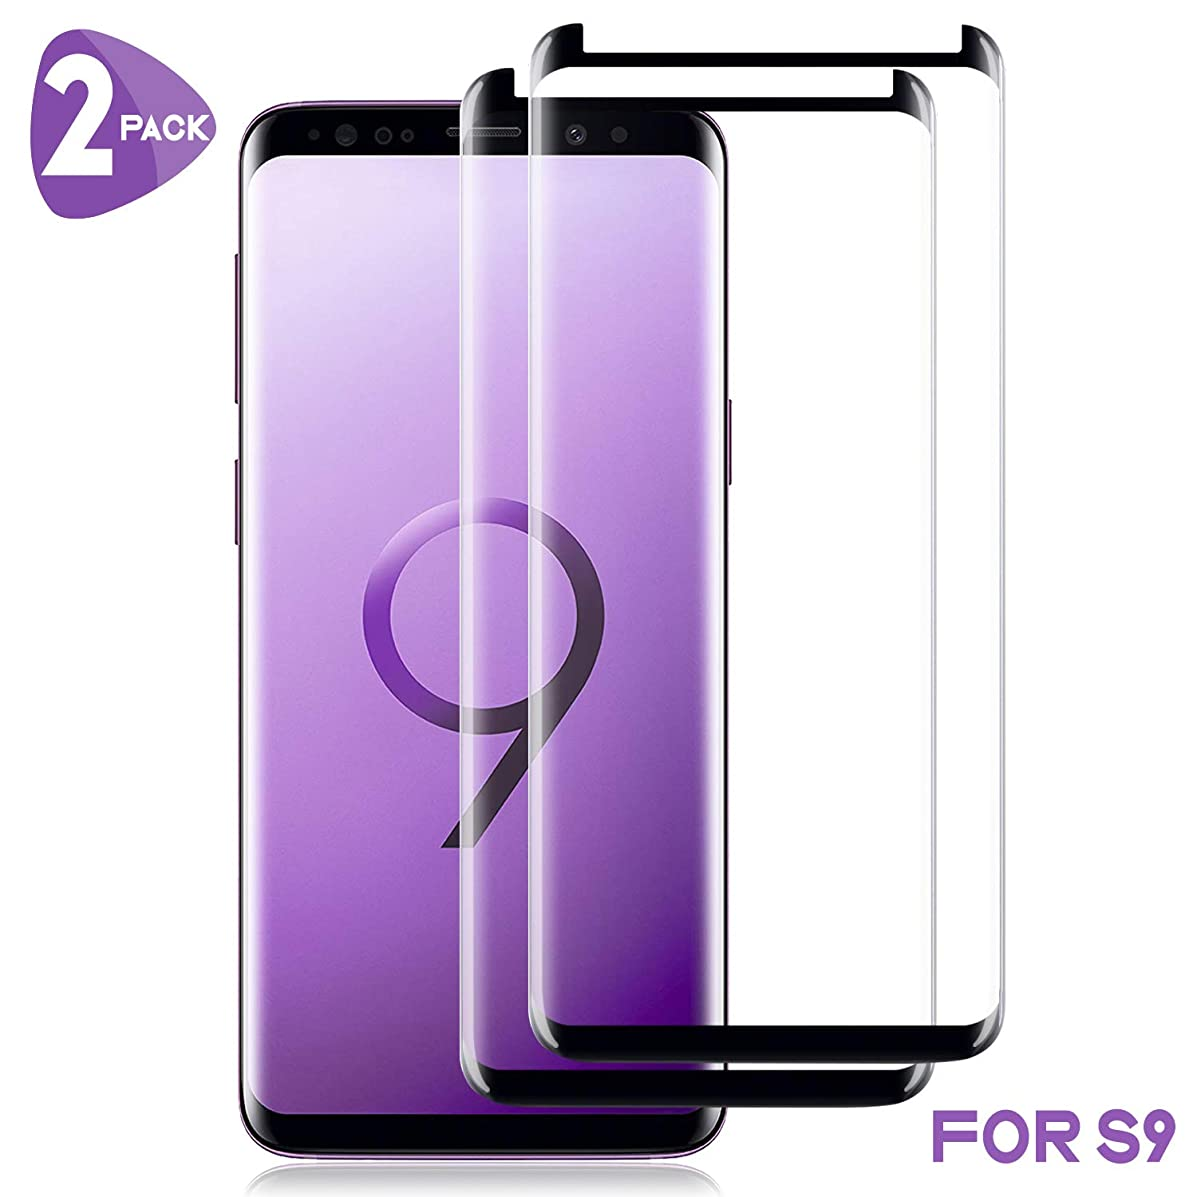 Galaxy S9 Screen Protector, [No Bubble][9H Hardness] [Anti-Scratch][Case-Friendly] Tempered Glass Screen Protector Compatible Galaxy S9 [2pack]